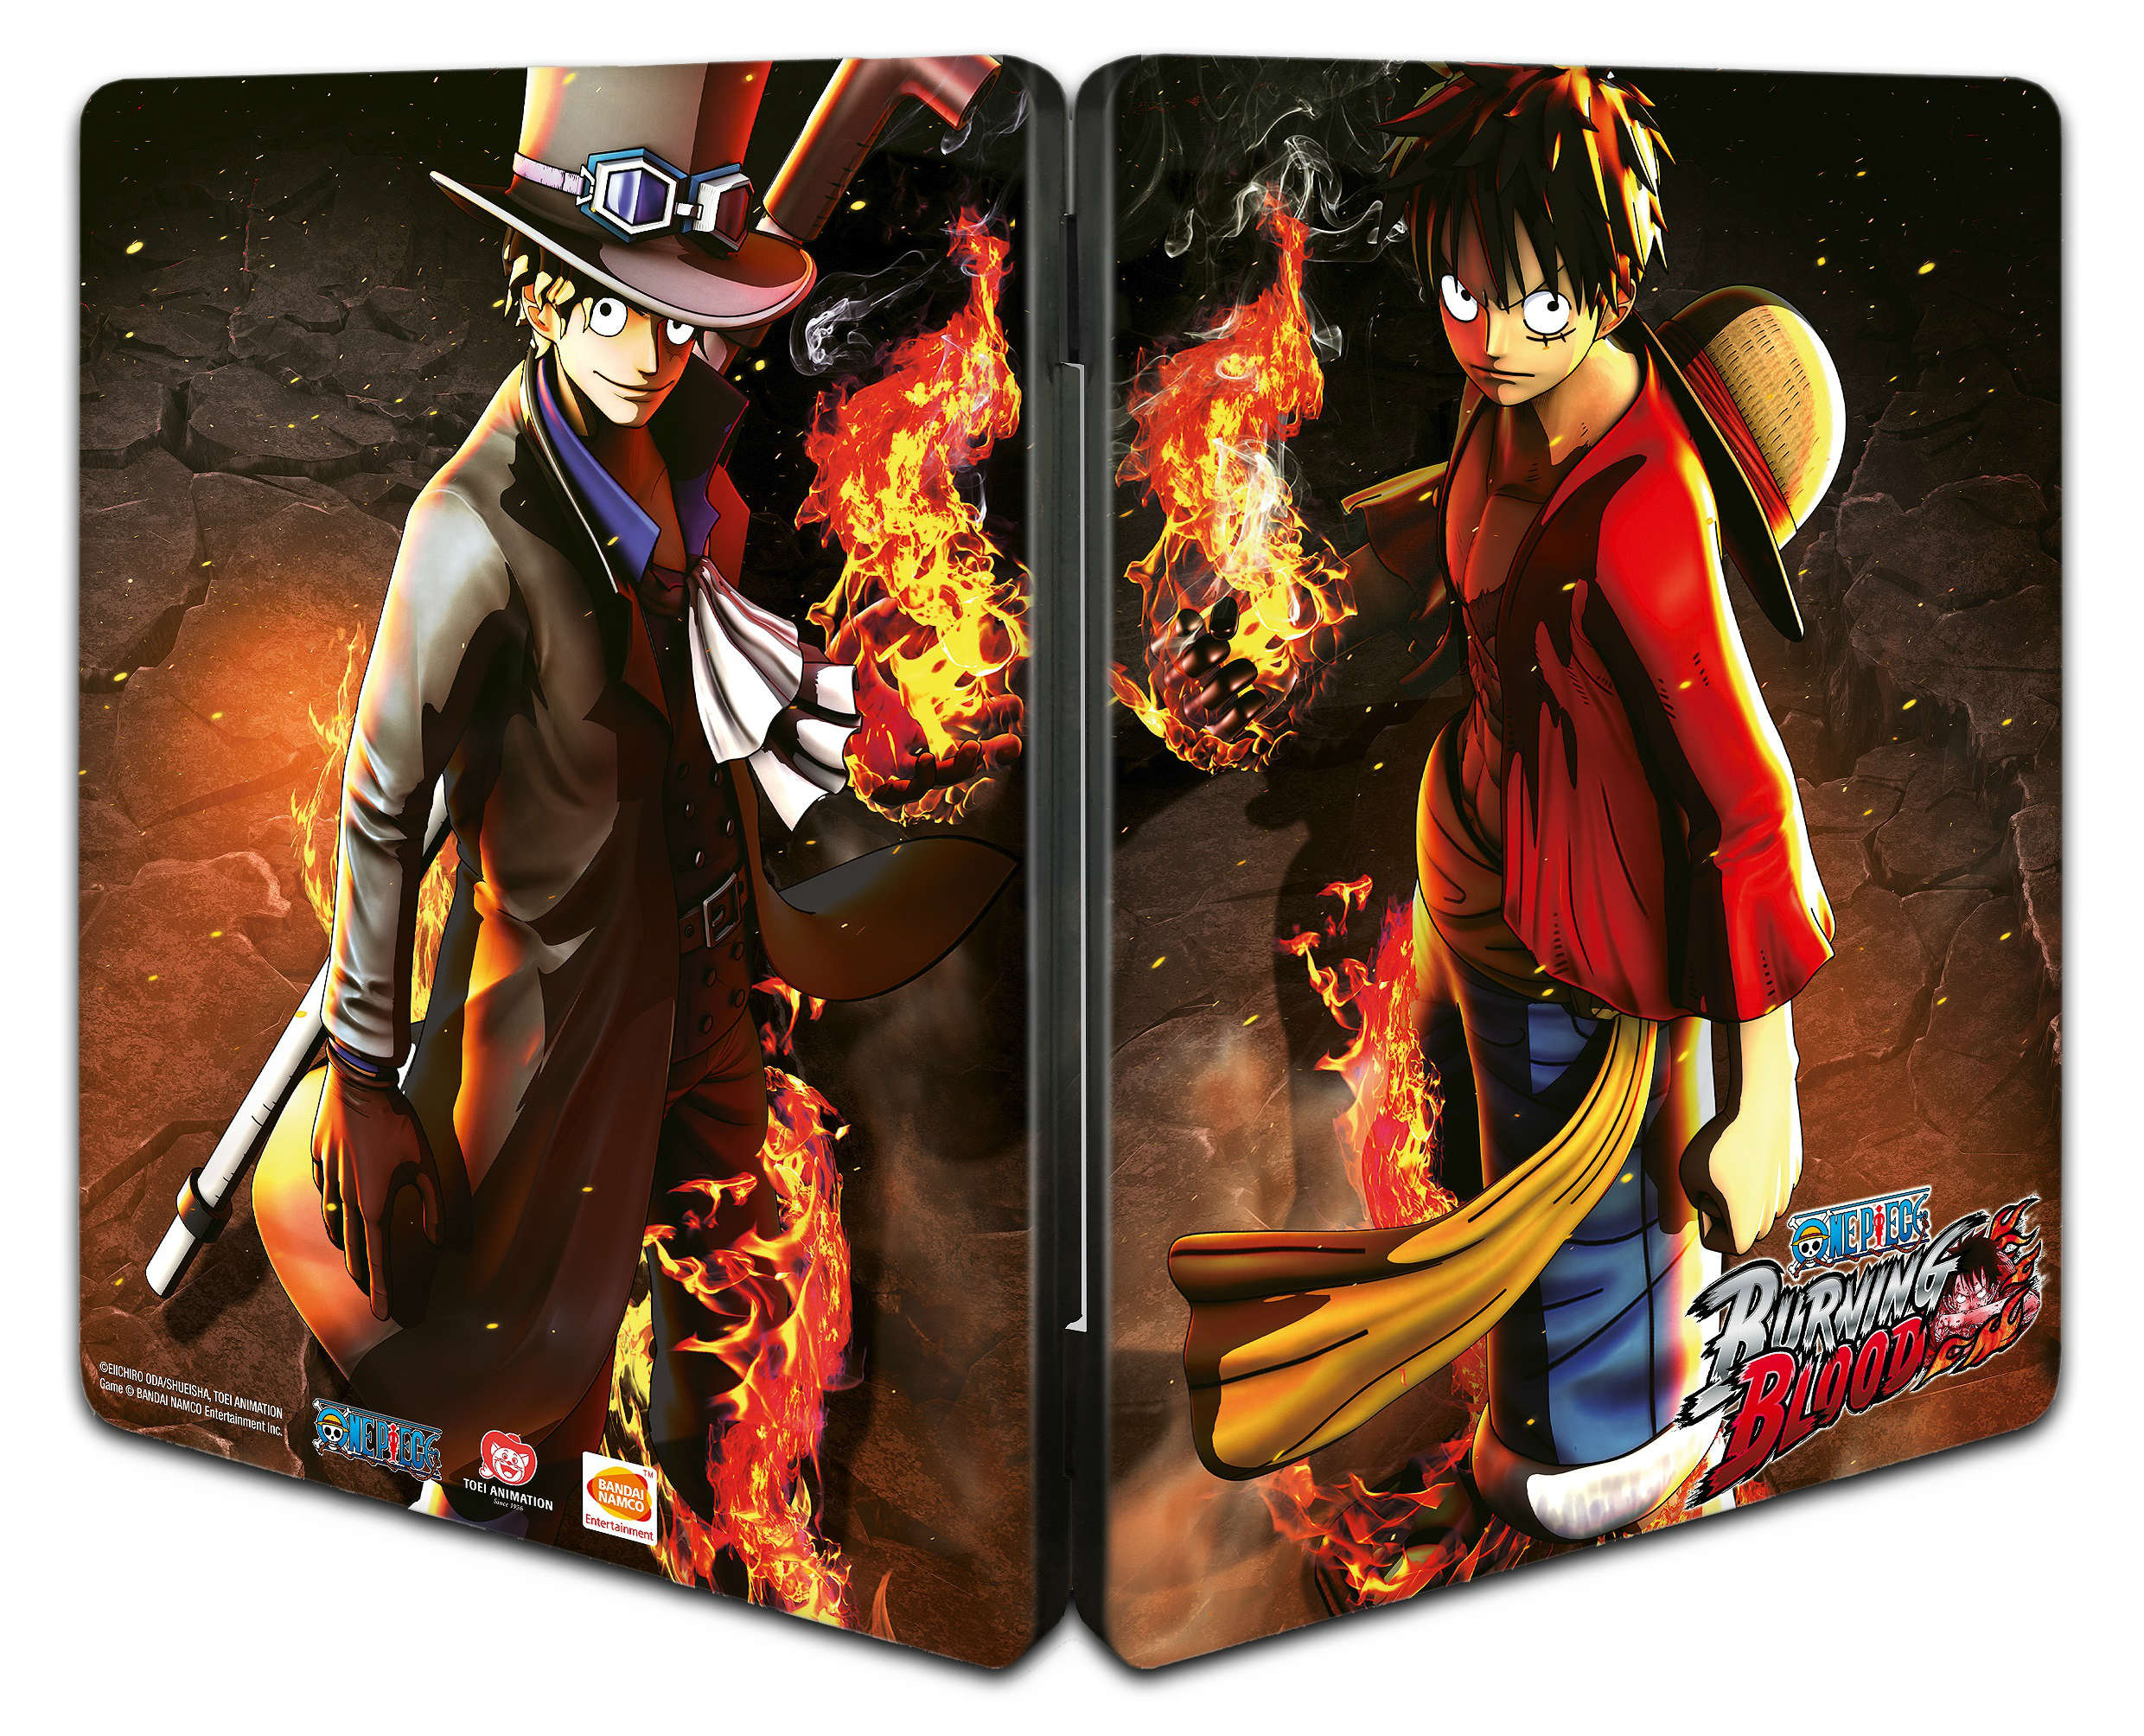 One Piece Burning Blood (Steelbook)